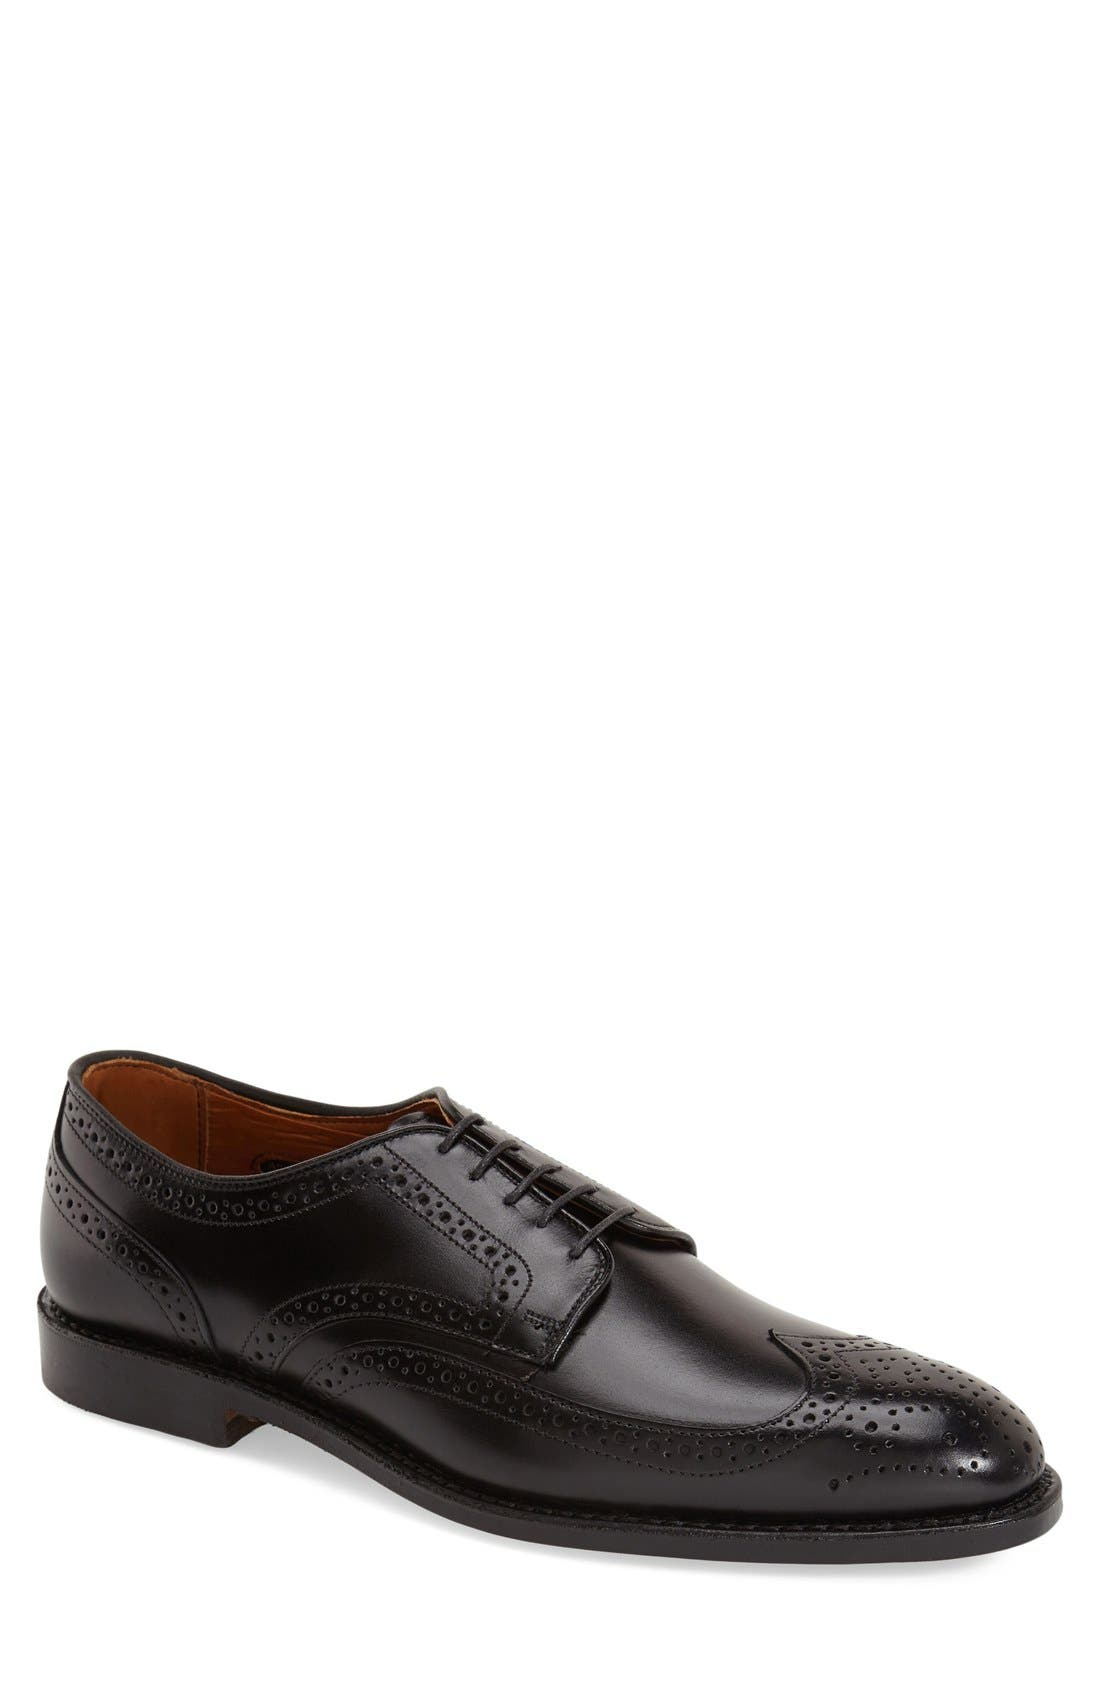 ALLEN EDMONDS, 'Madison Park' Wingtip, Main thumbnail 1, color, BLACK LEATHER